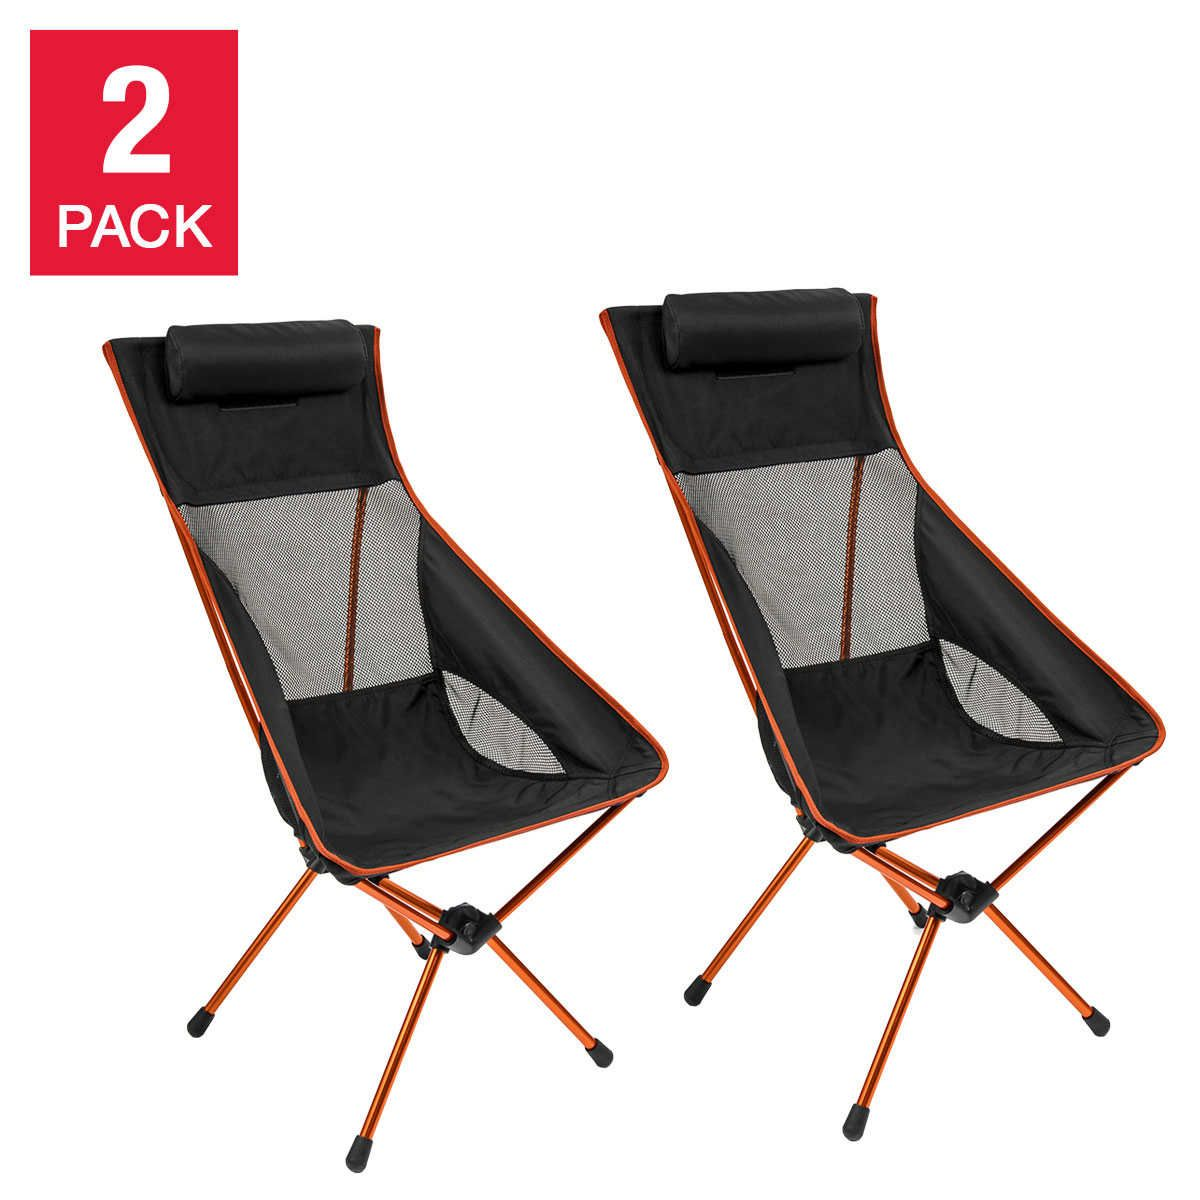 Pin By Larraine Stone On Camping In 2020 Backpack Beach Chair Folding Rocking Chair Beach Chairs